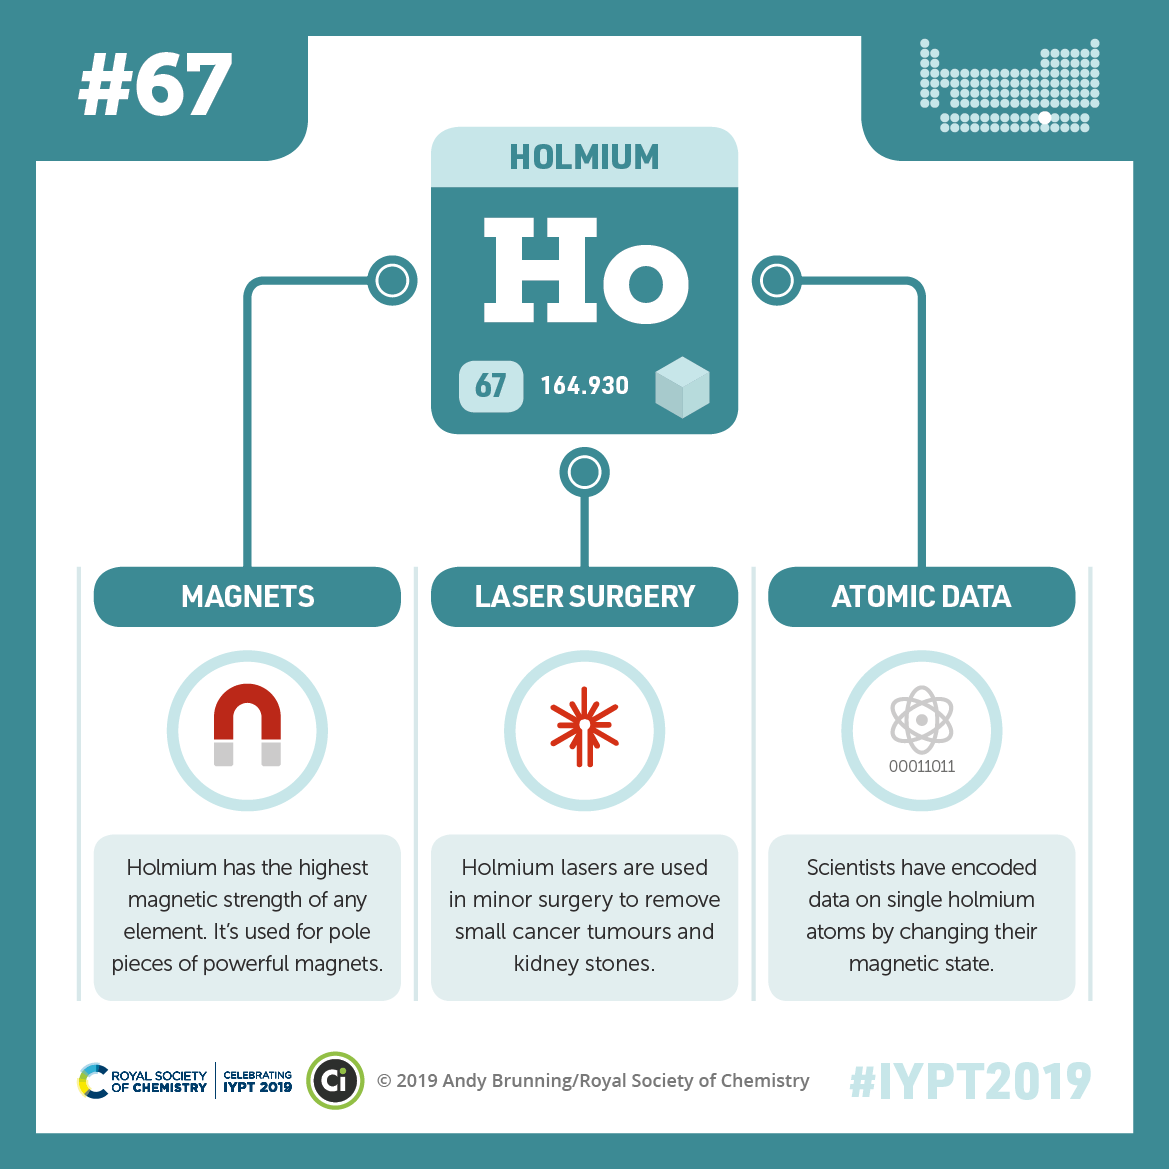 IYPT 2019 Elements 067: Holmium: Magnets and laser surgery